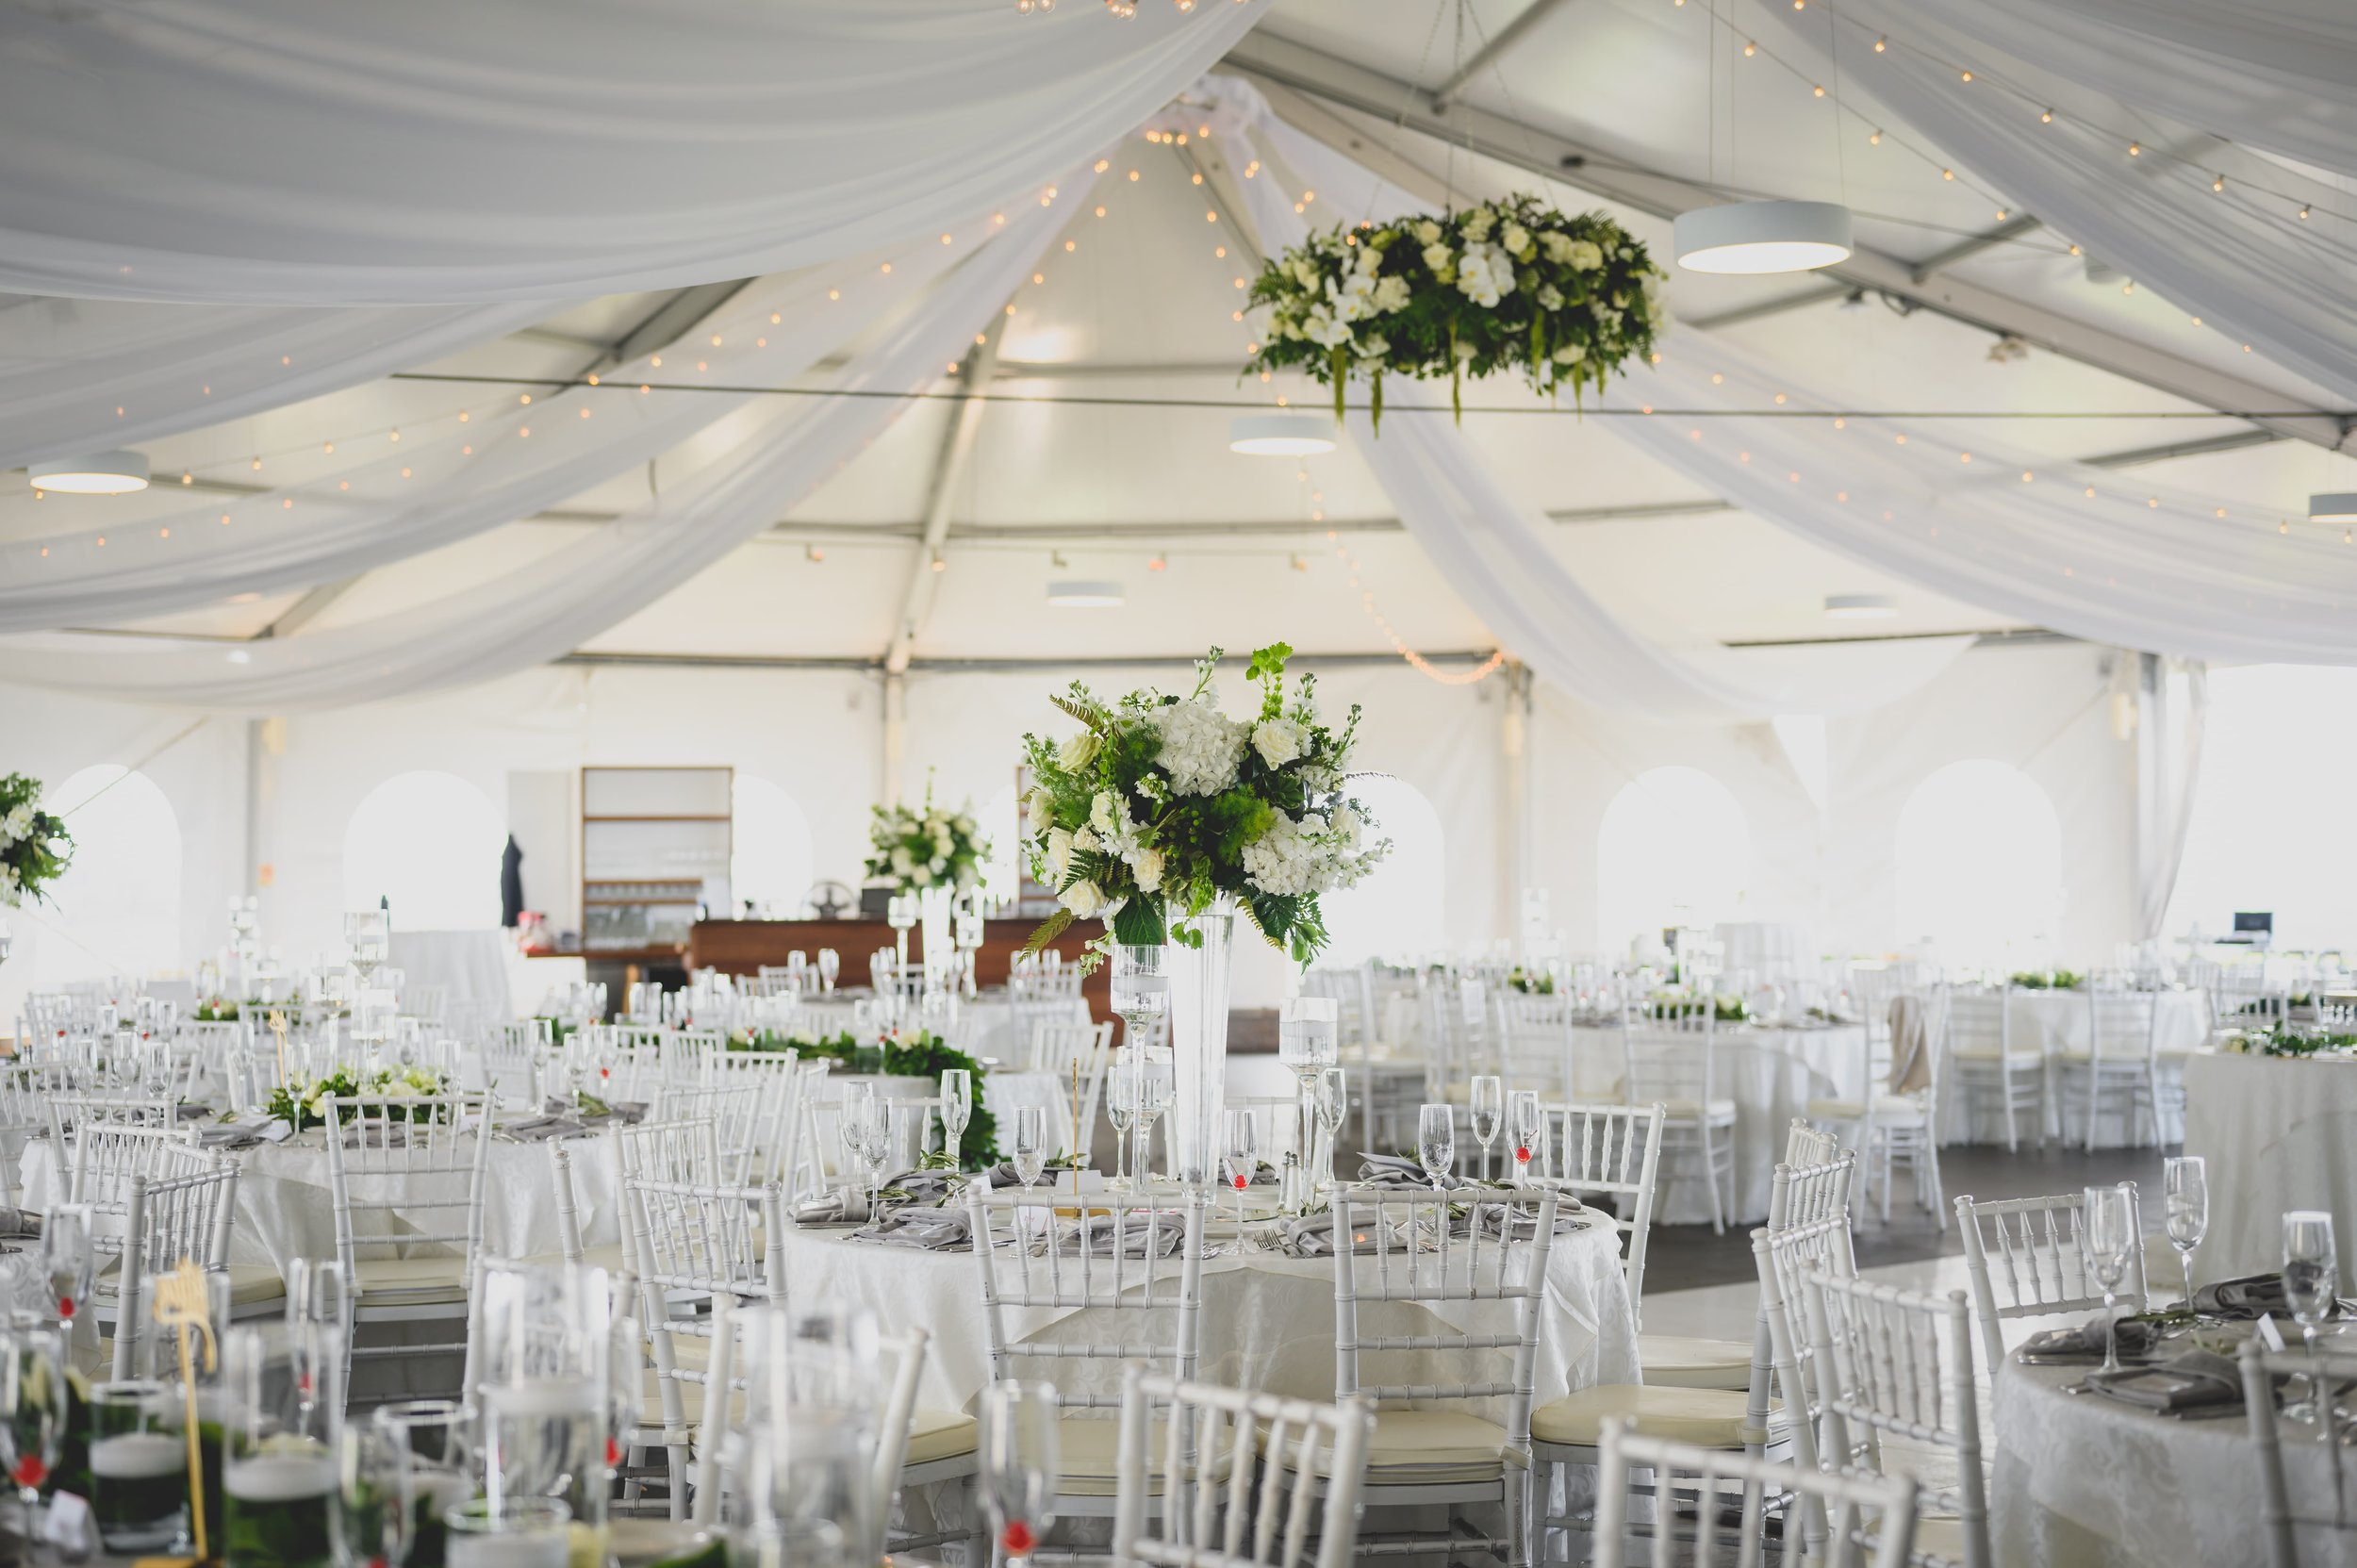 A outdoor wedding reception area under a large tent.